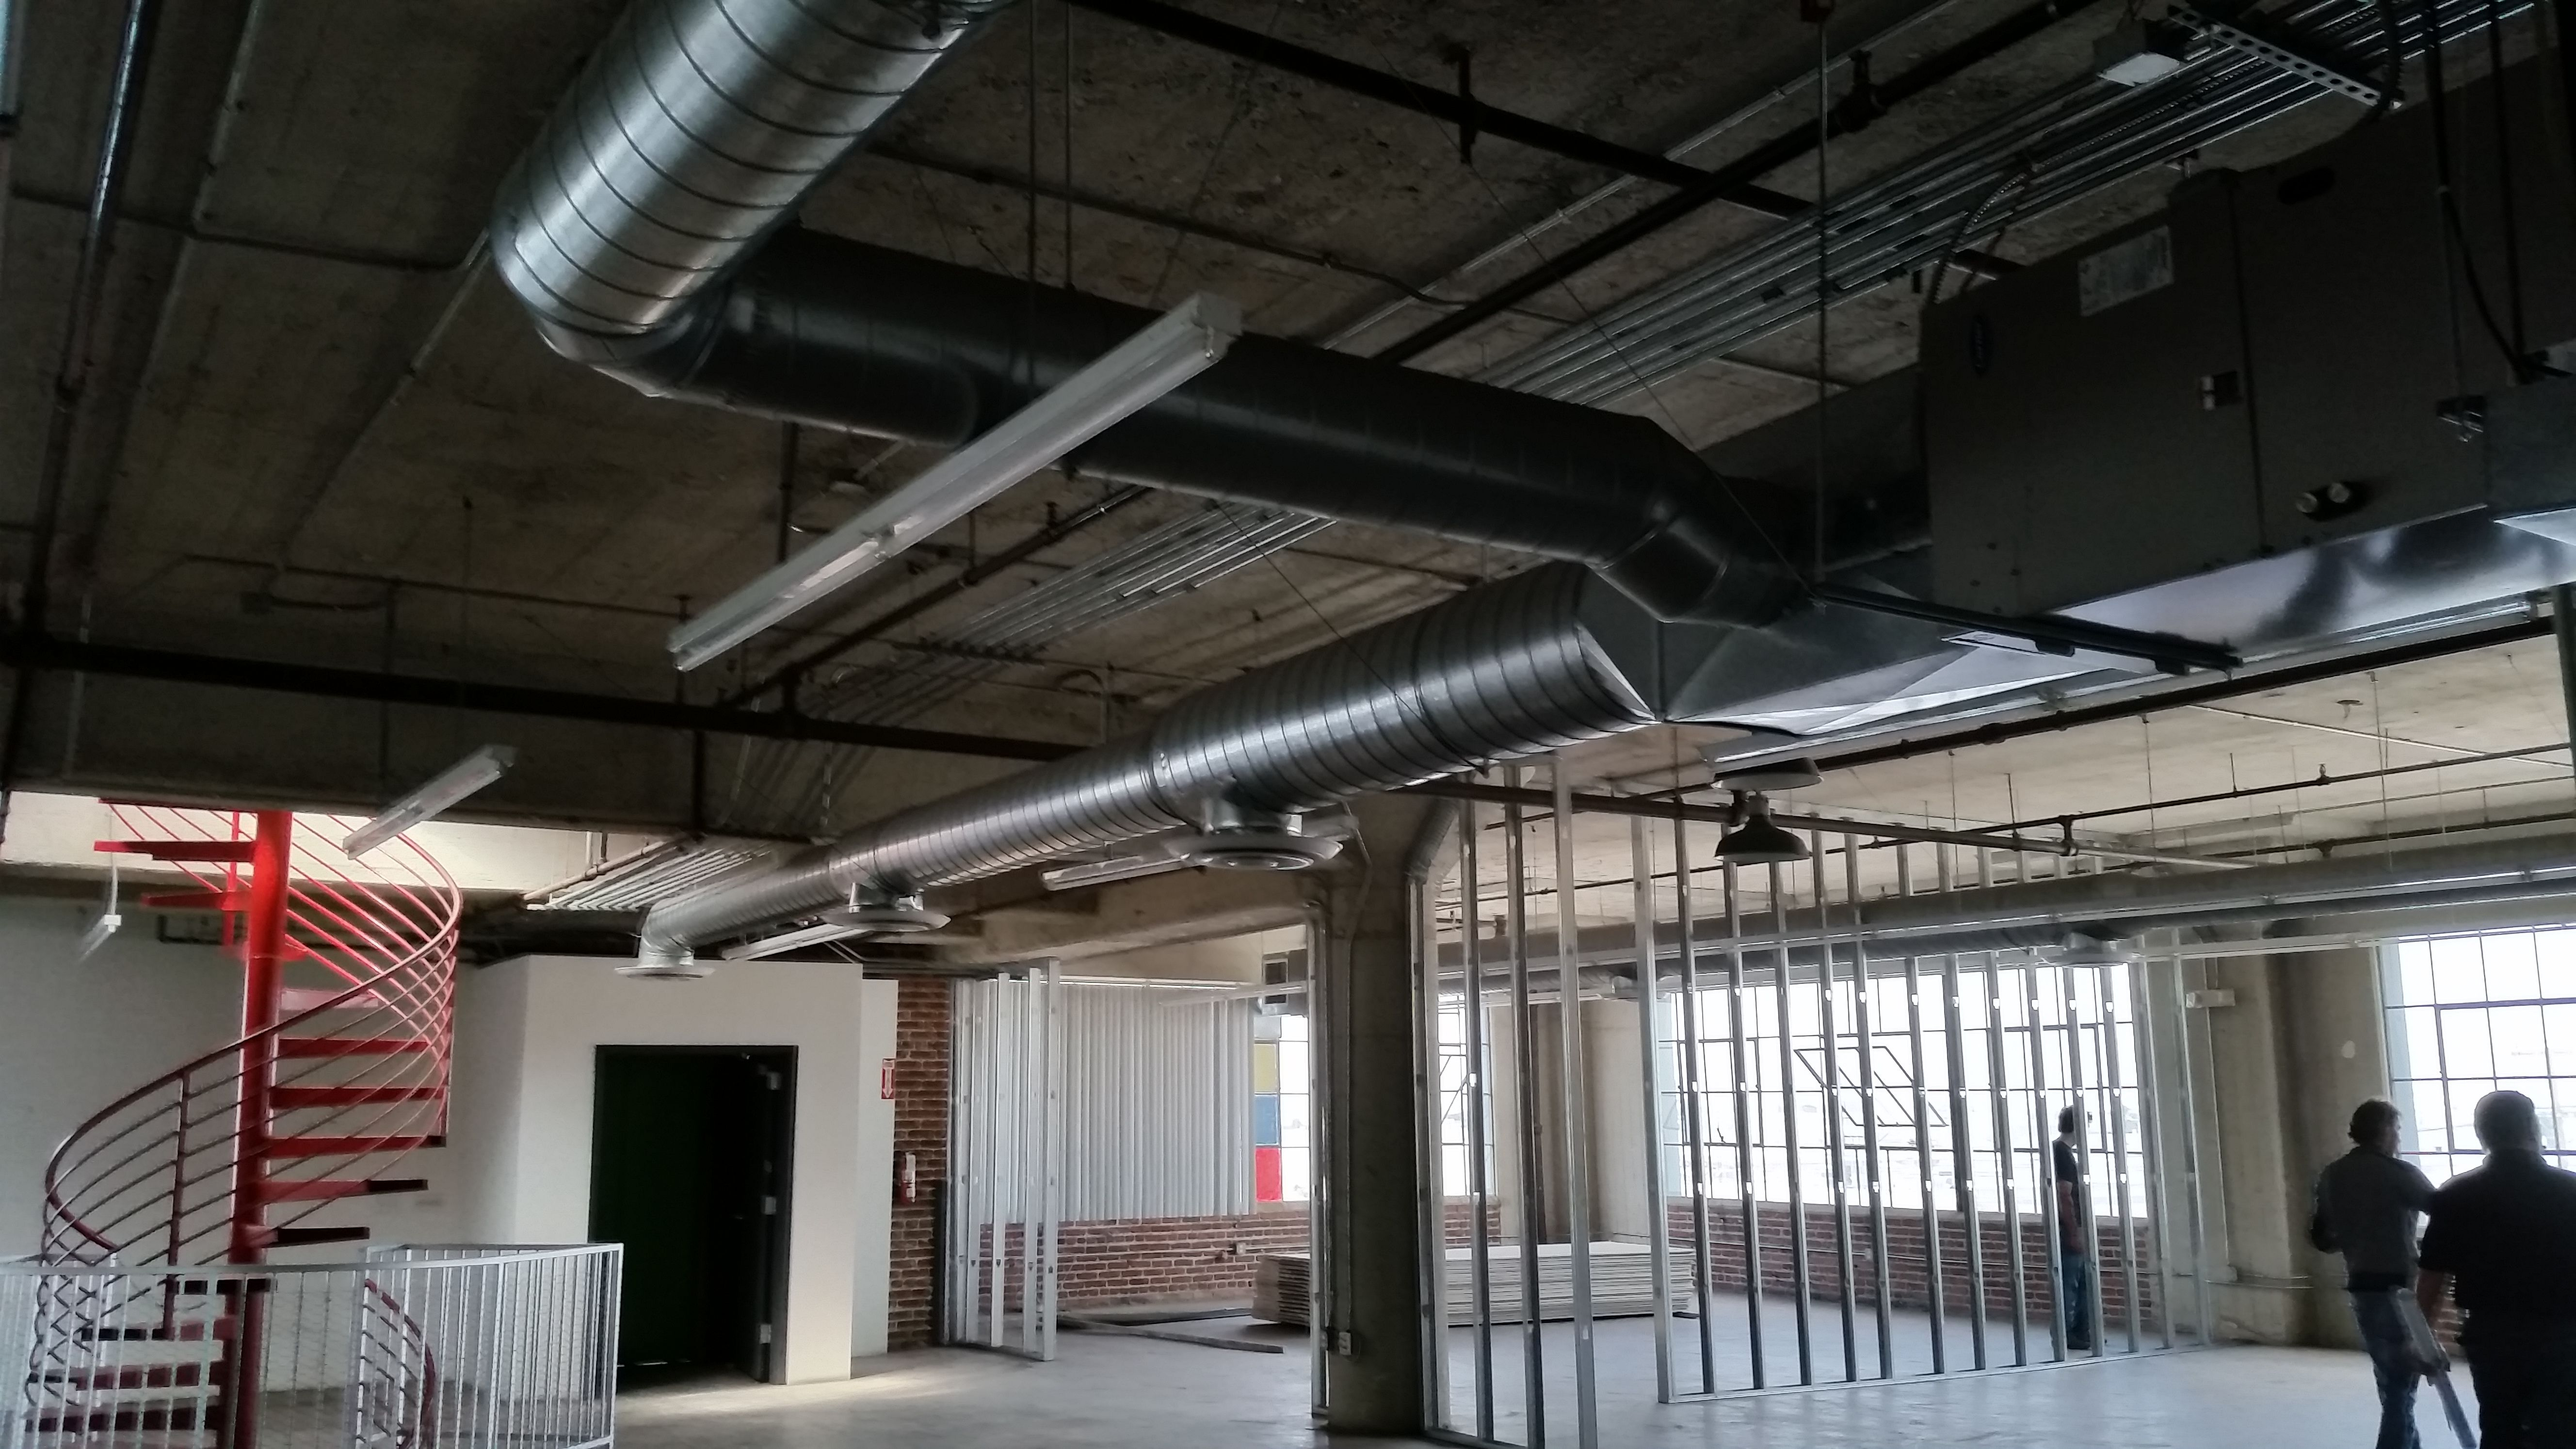 duct work in a commercial space